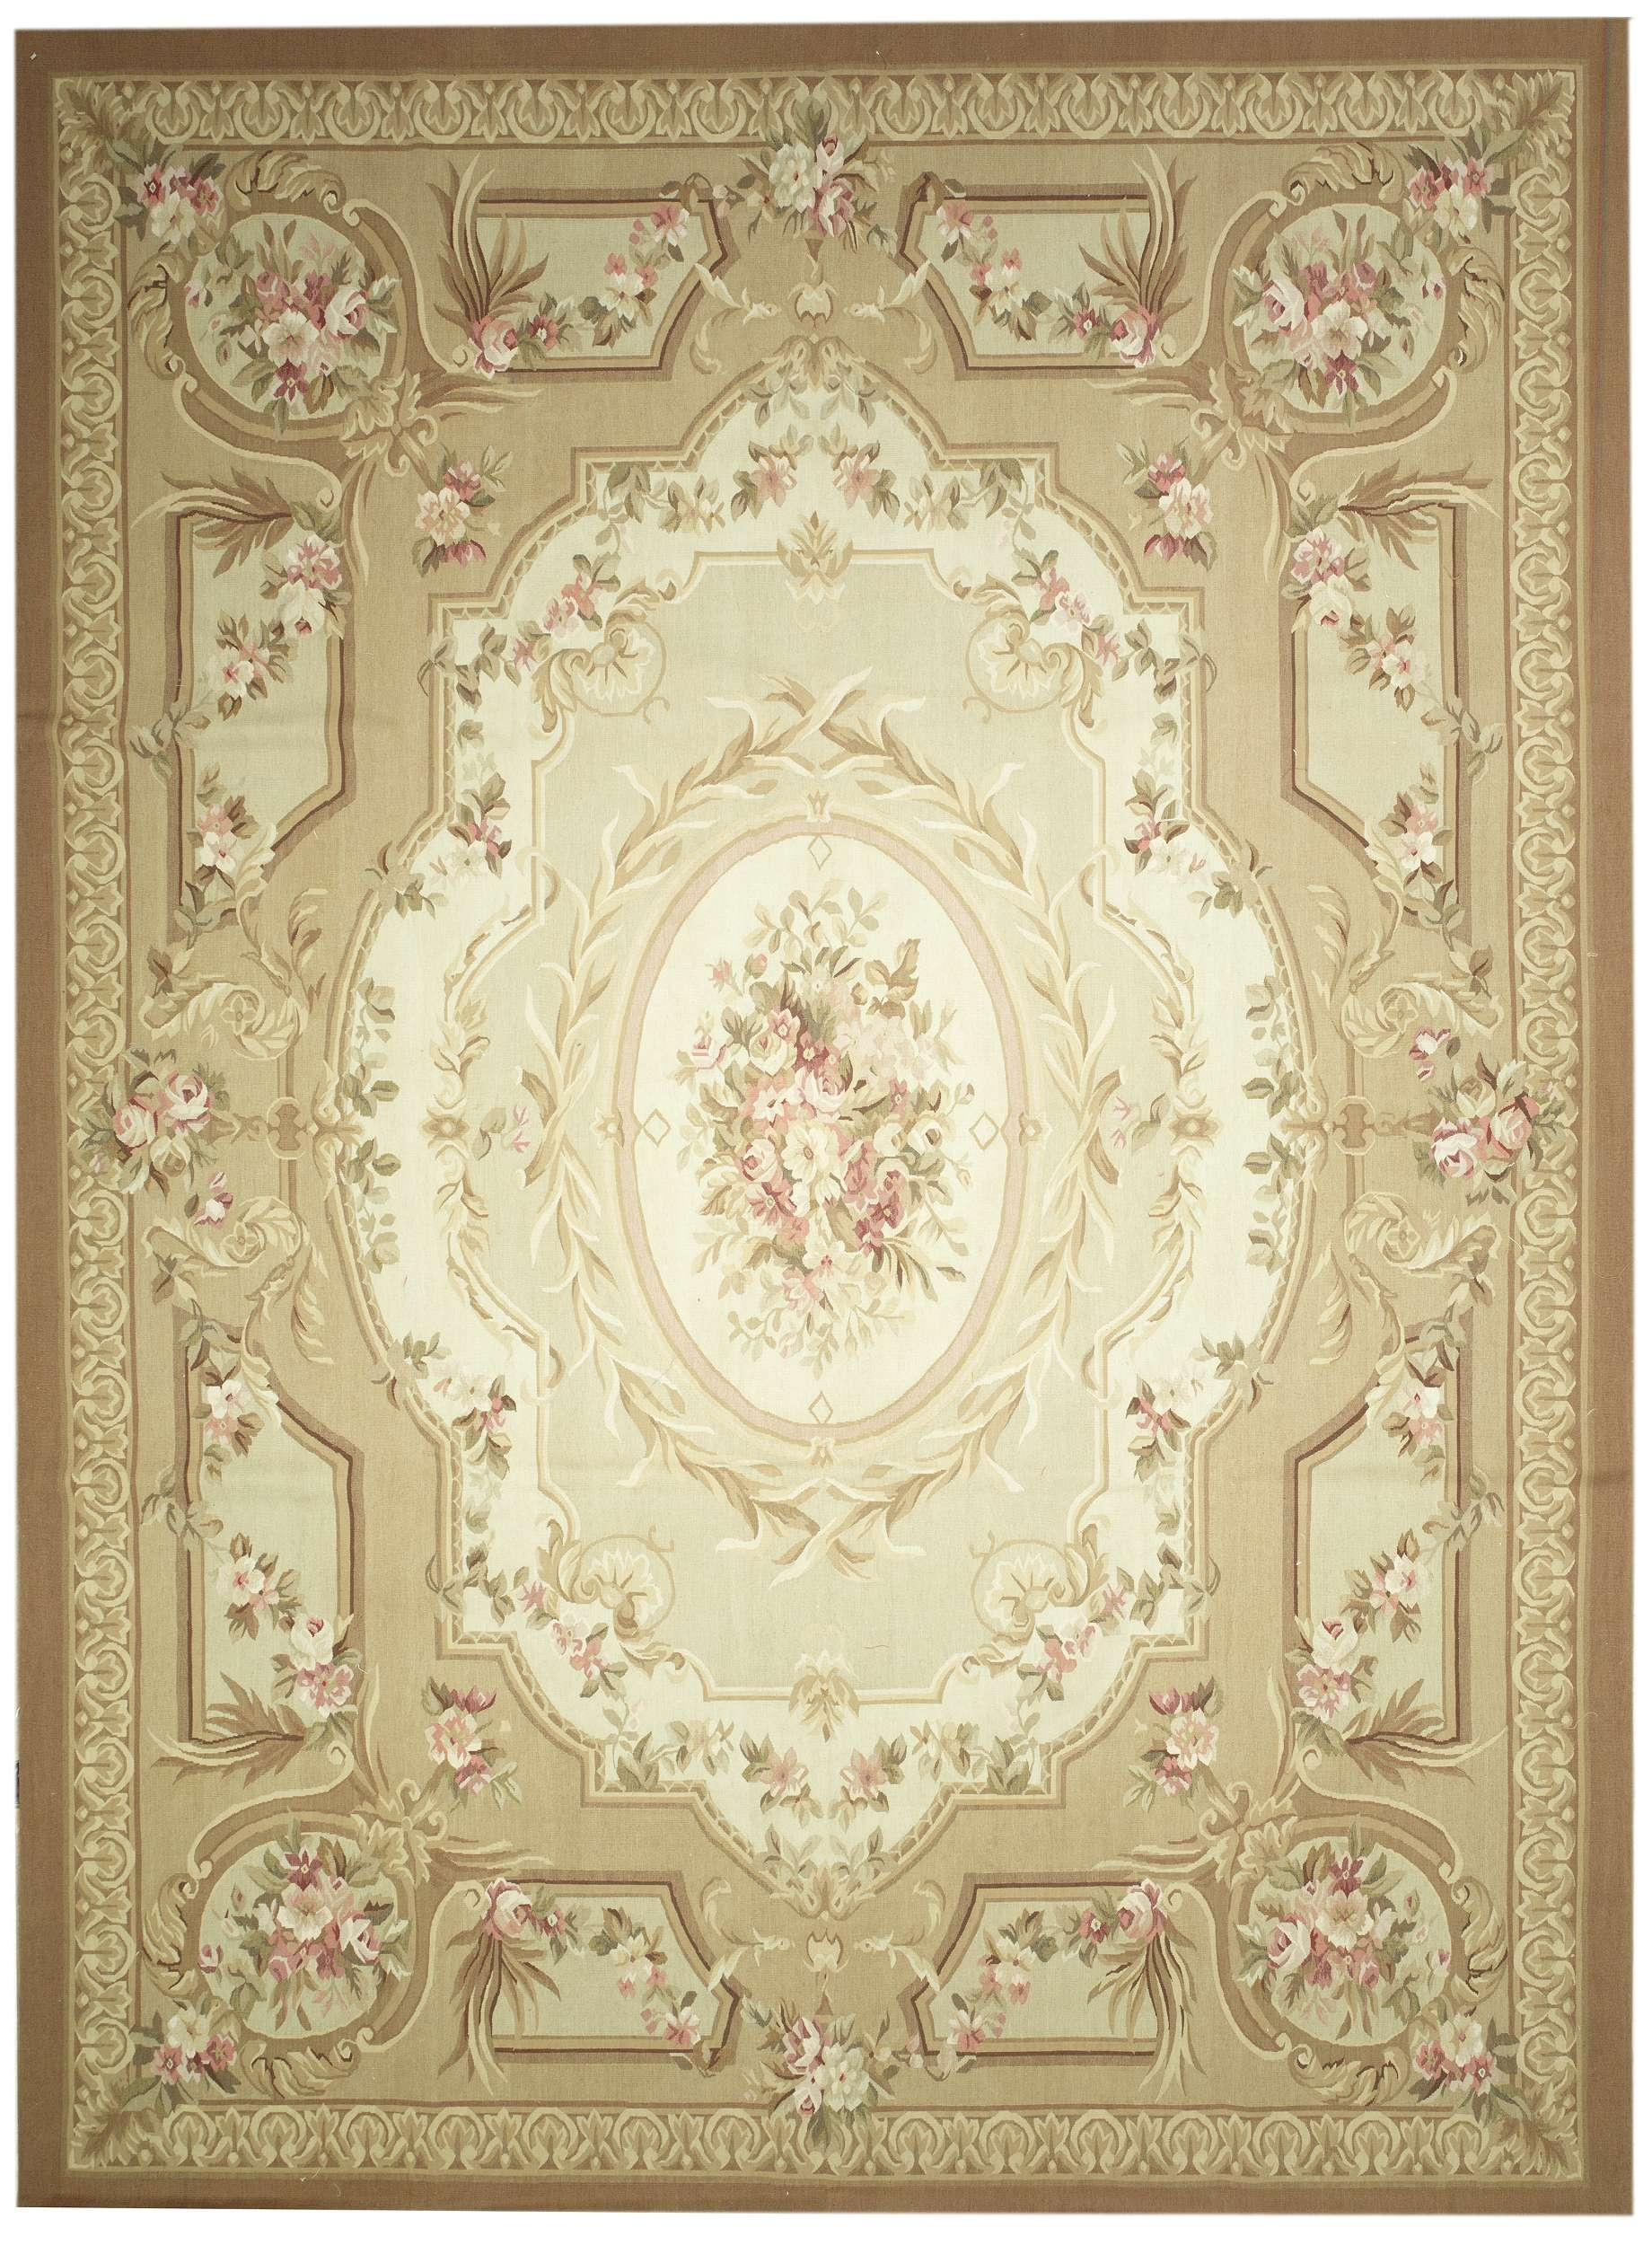 New Contemporary European Aubussan Area Rug 51693 Intended For European Rugs (Image 14 of 15)